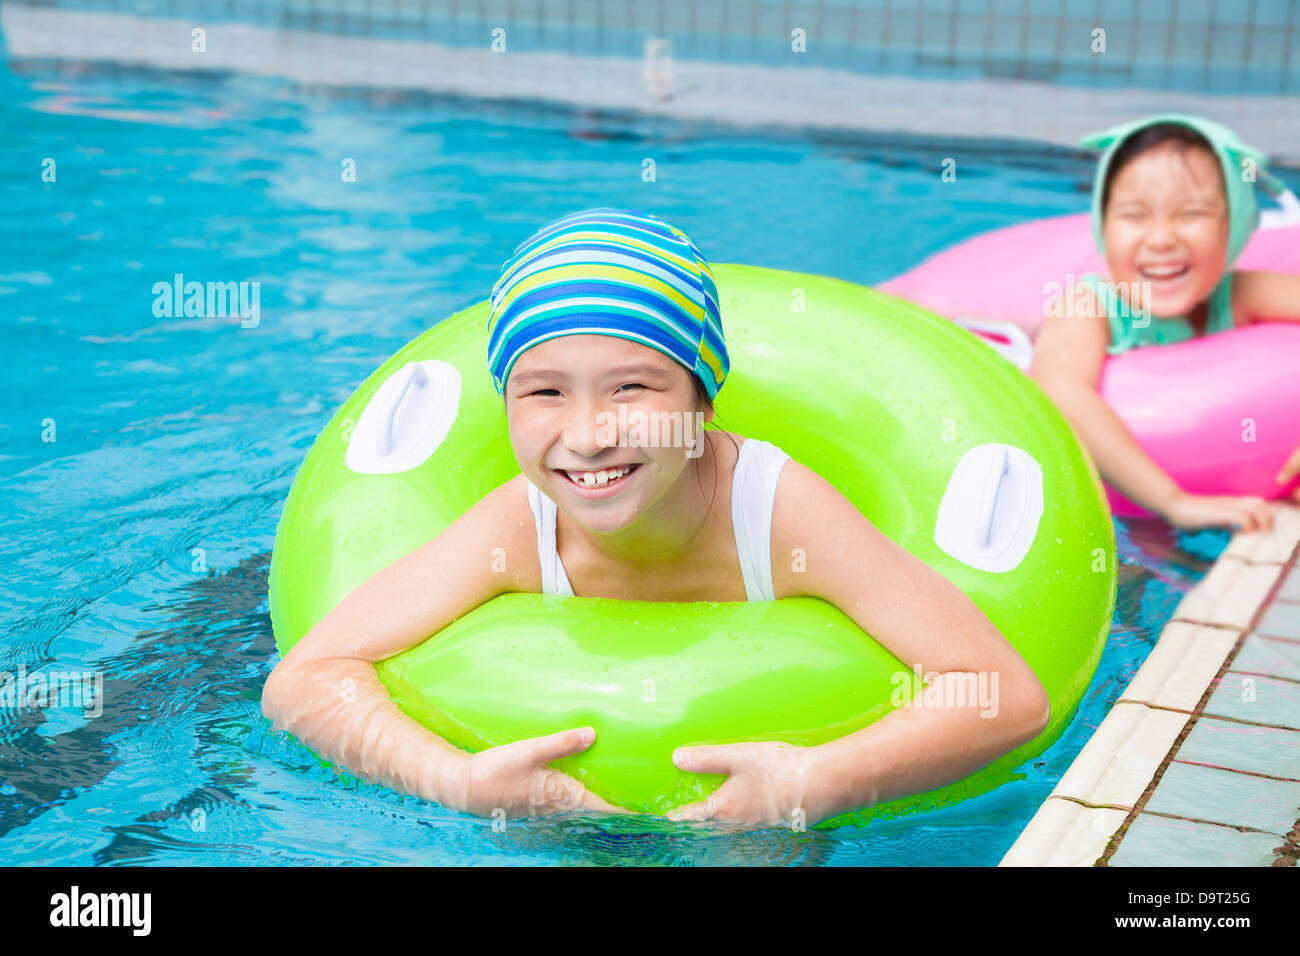 Belle Ragazze Con Anello Gonfiabile In Piscina Foto Stock Alamy